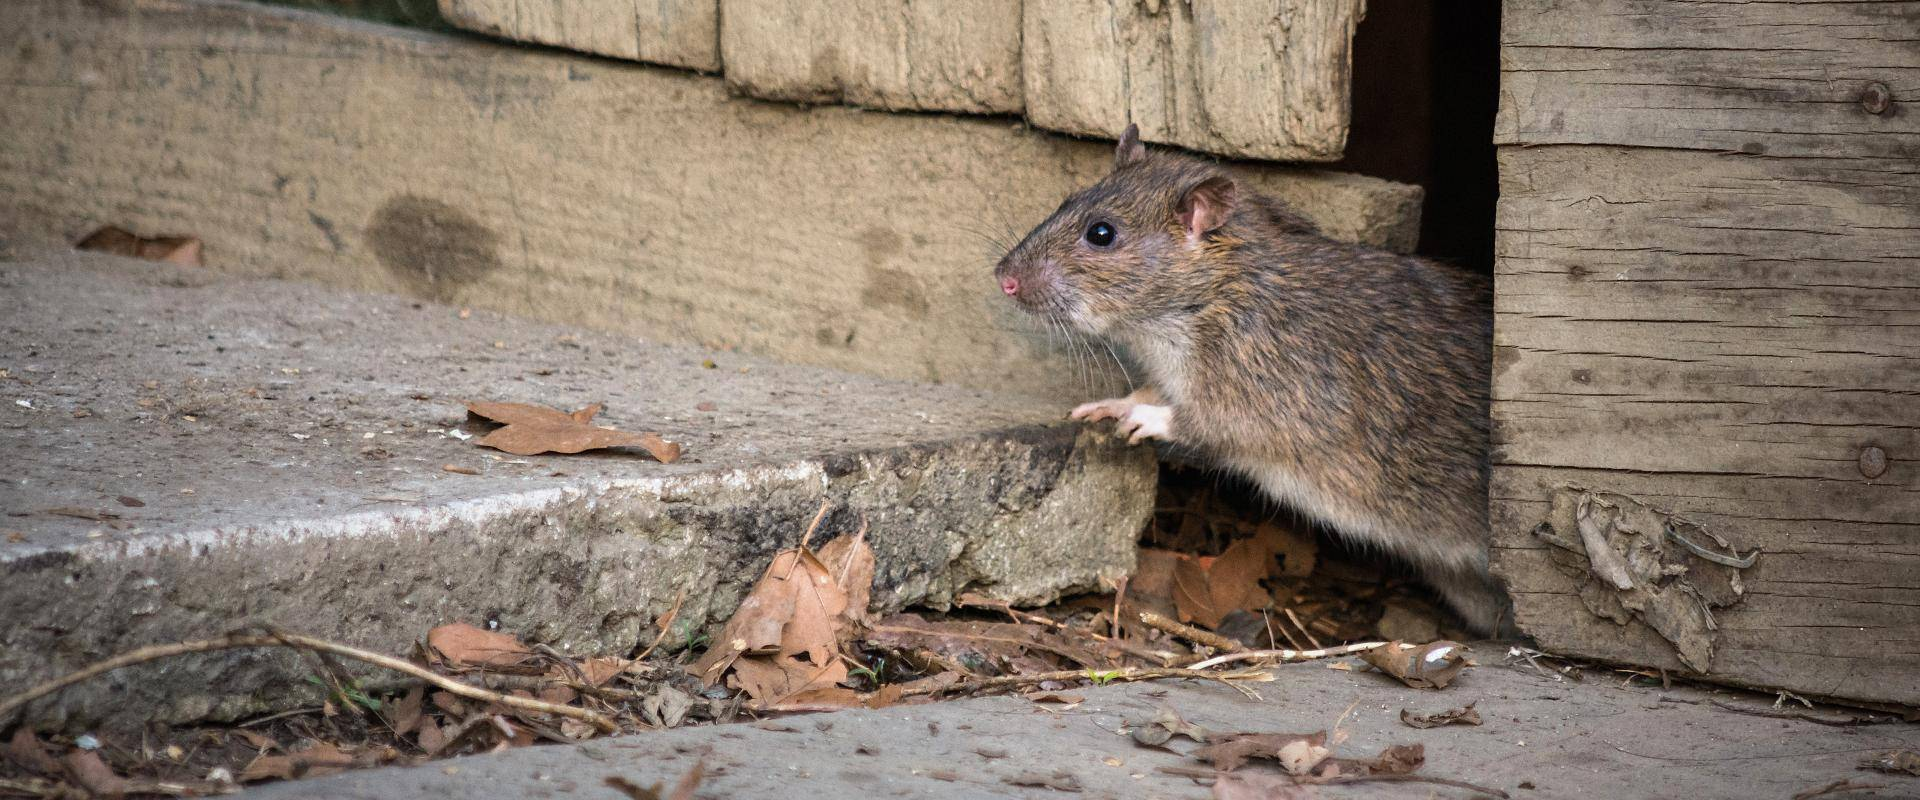 rat coming out of a hole